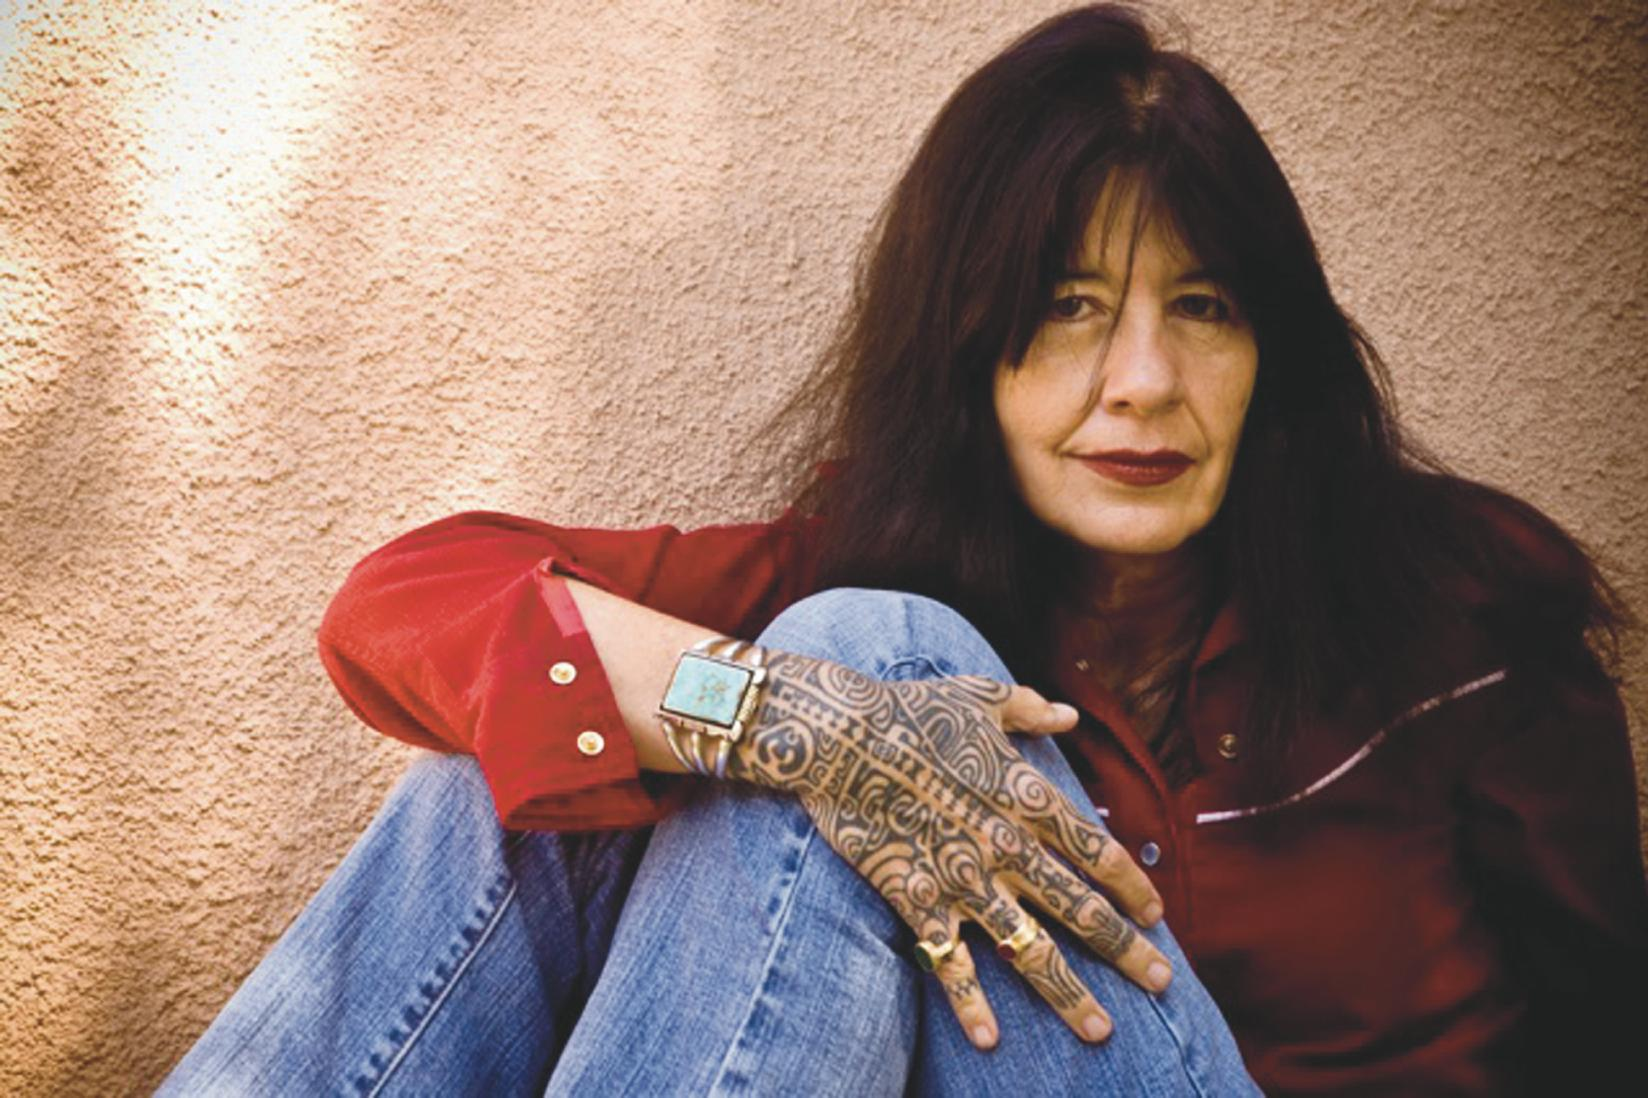 Thoughtful Thursday: Joy Harjo, Our New U.S. Poet Laureate